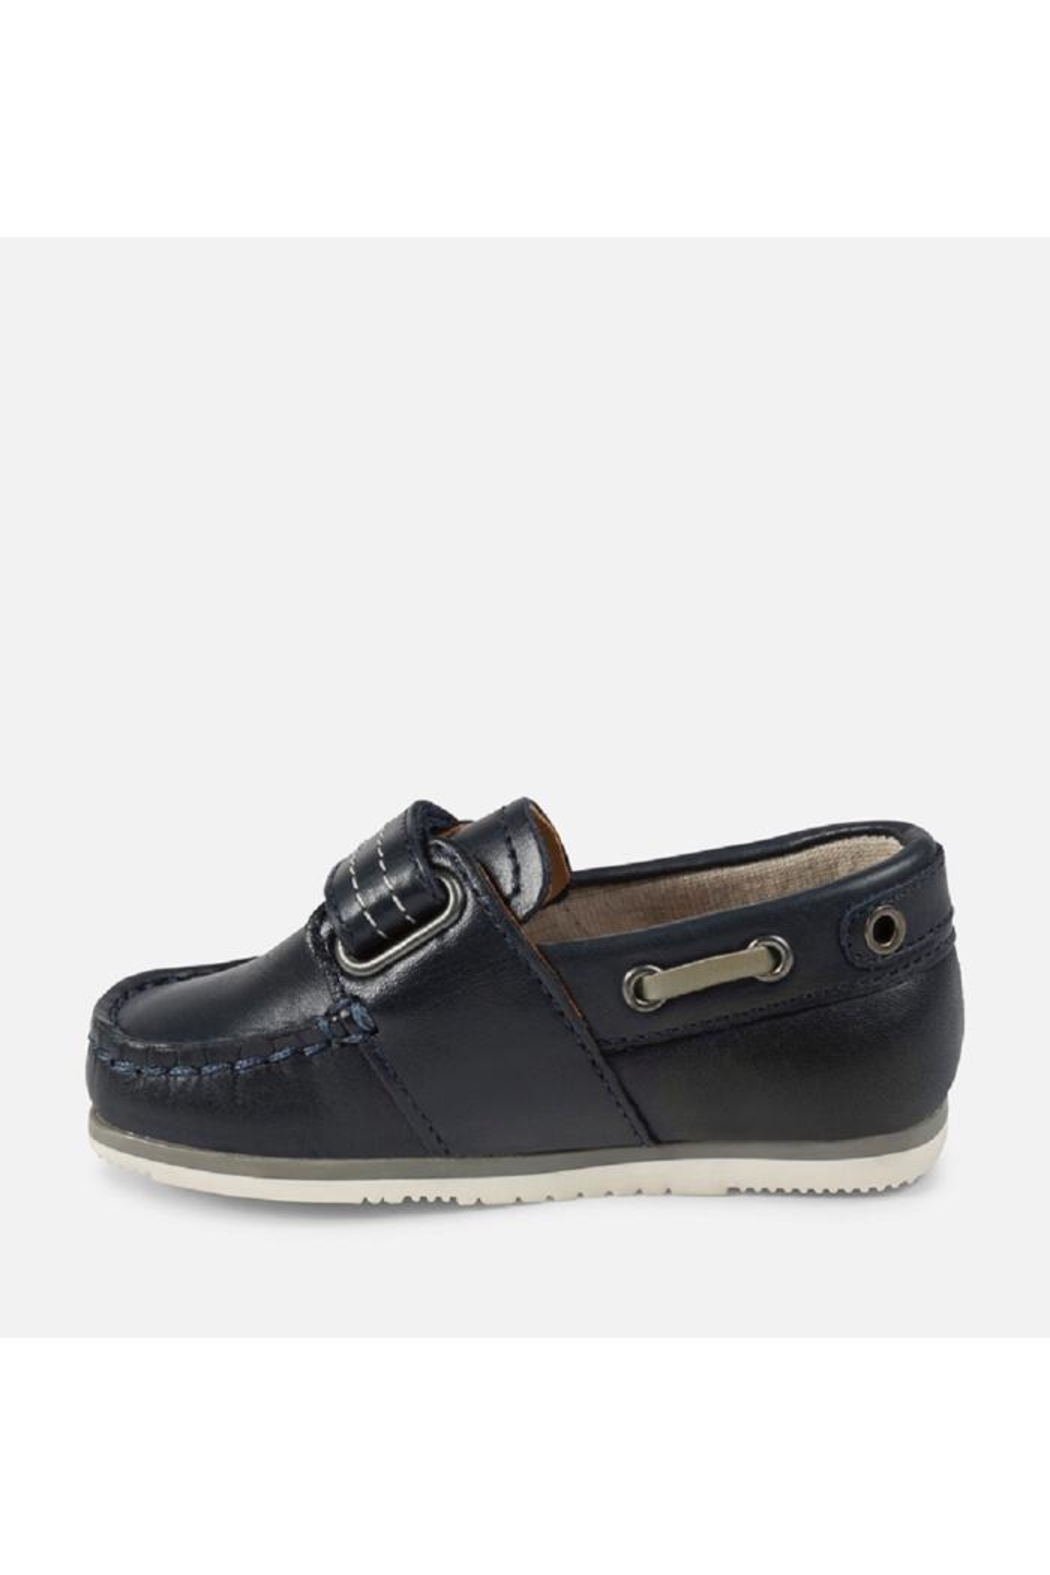 Mayoral Navy Leather Loafer - Front Full Image